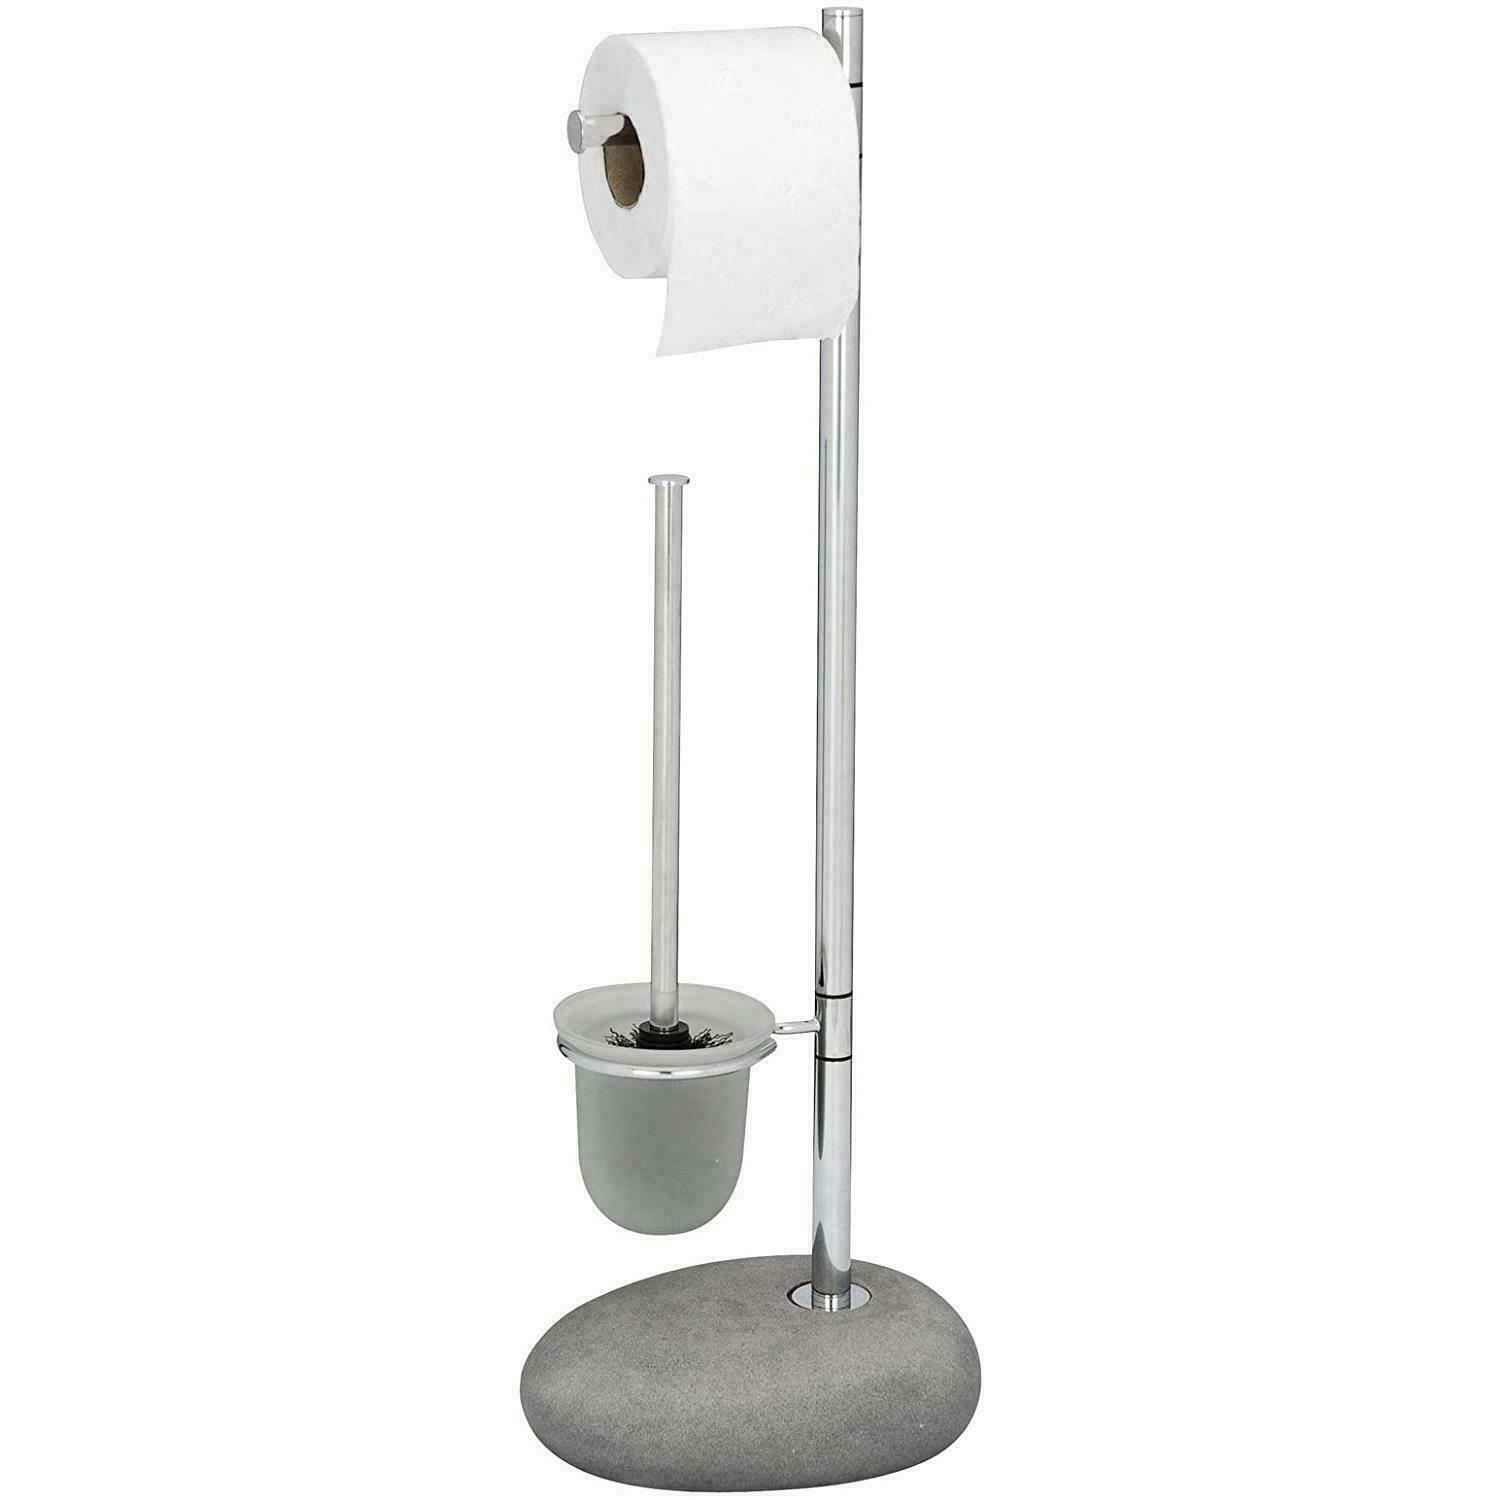 Wenko 2-in-1 Toilet Brush Stand With Toilet Roll Holder Pebble Stone Grey/Silver